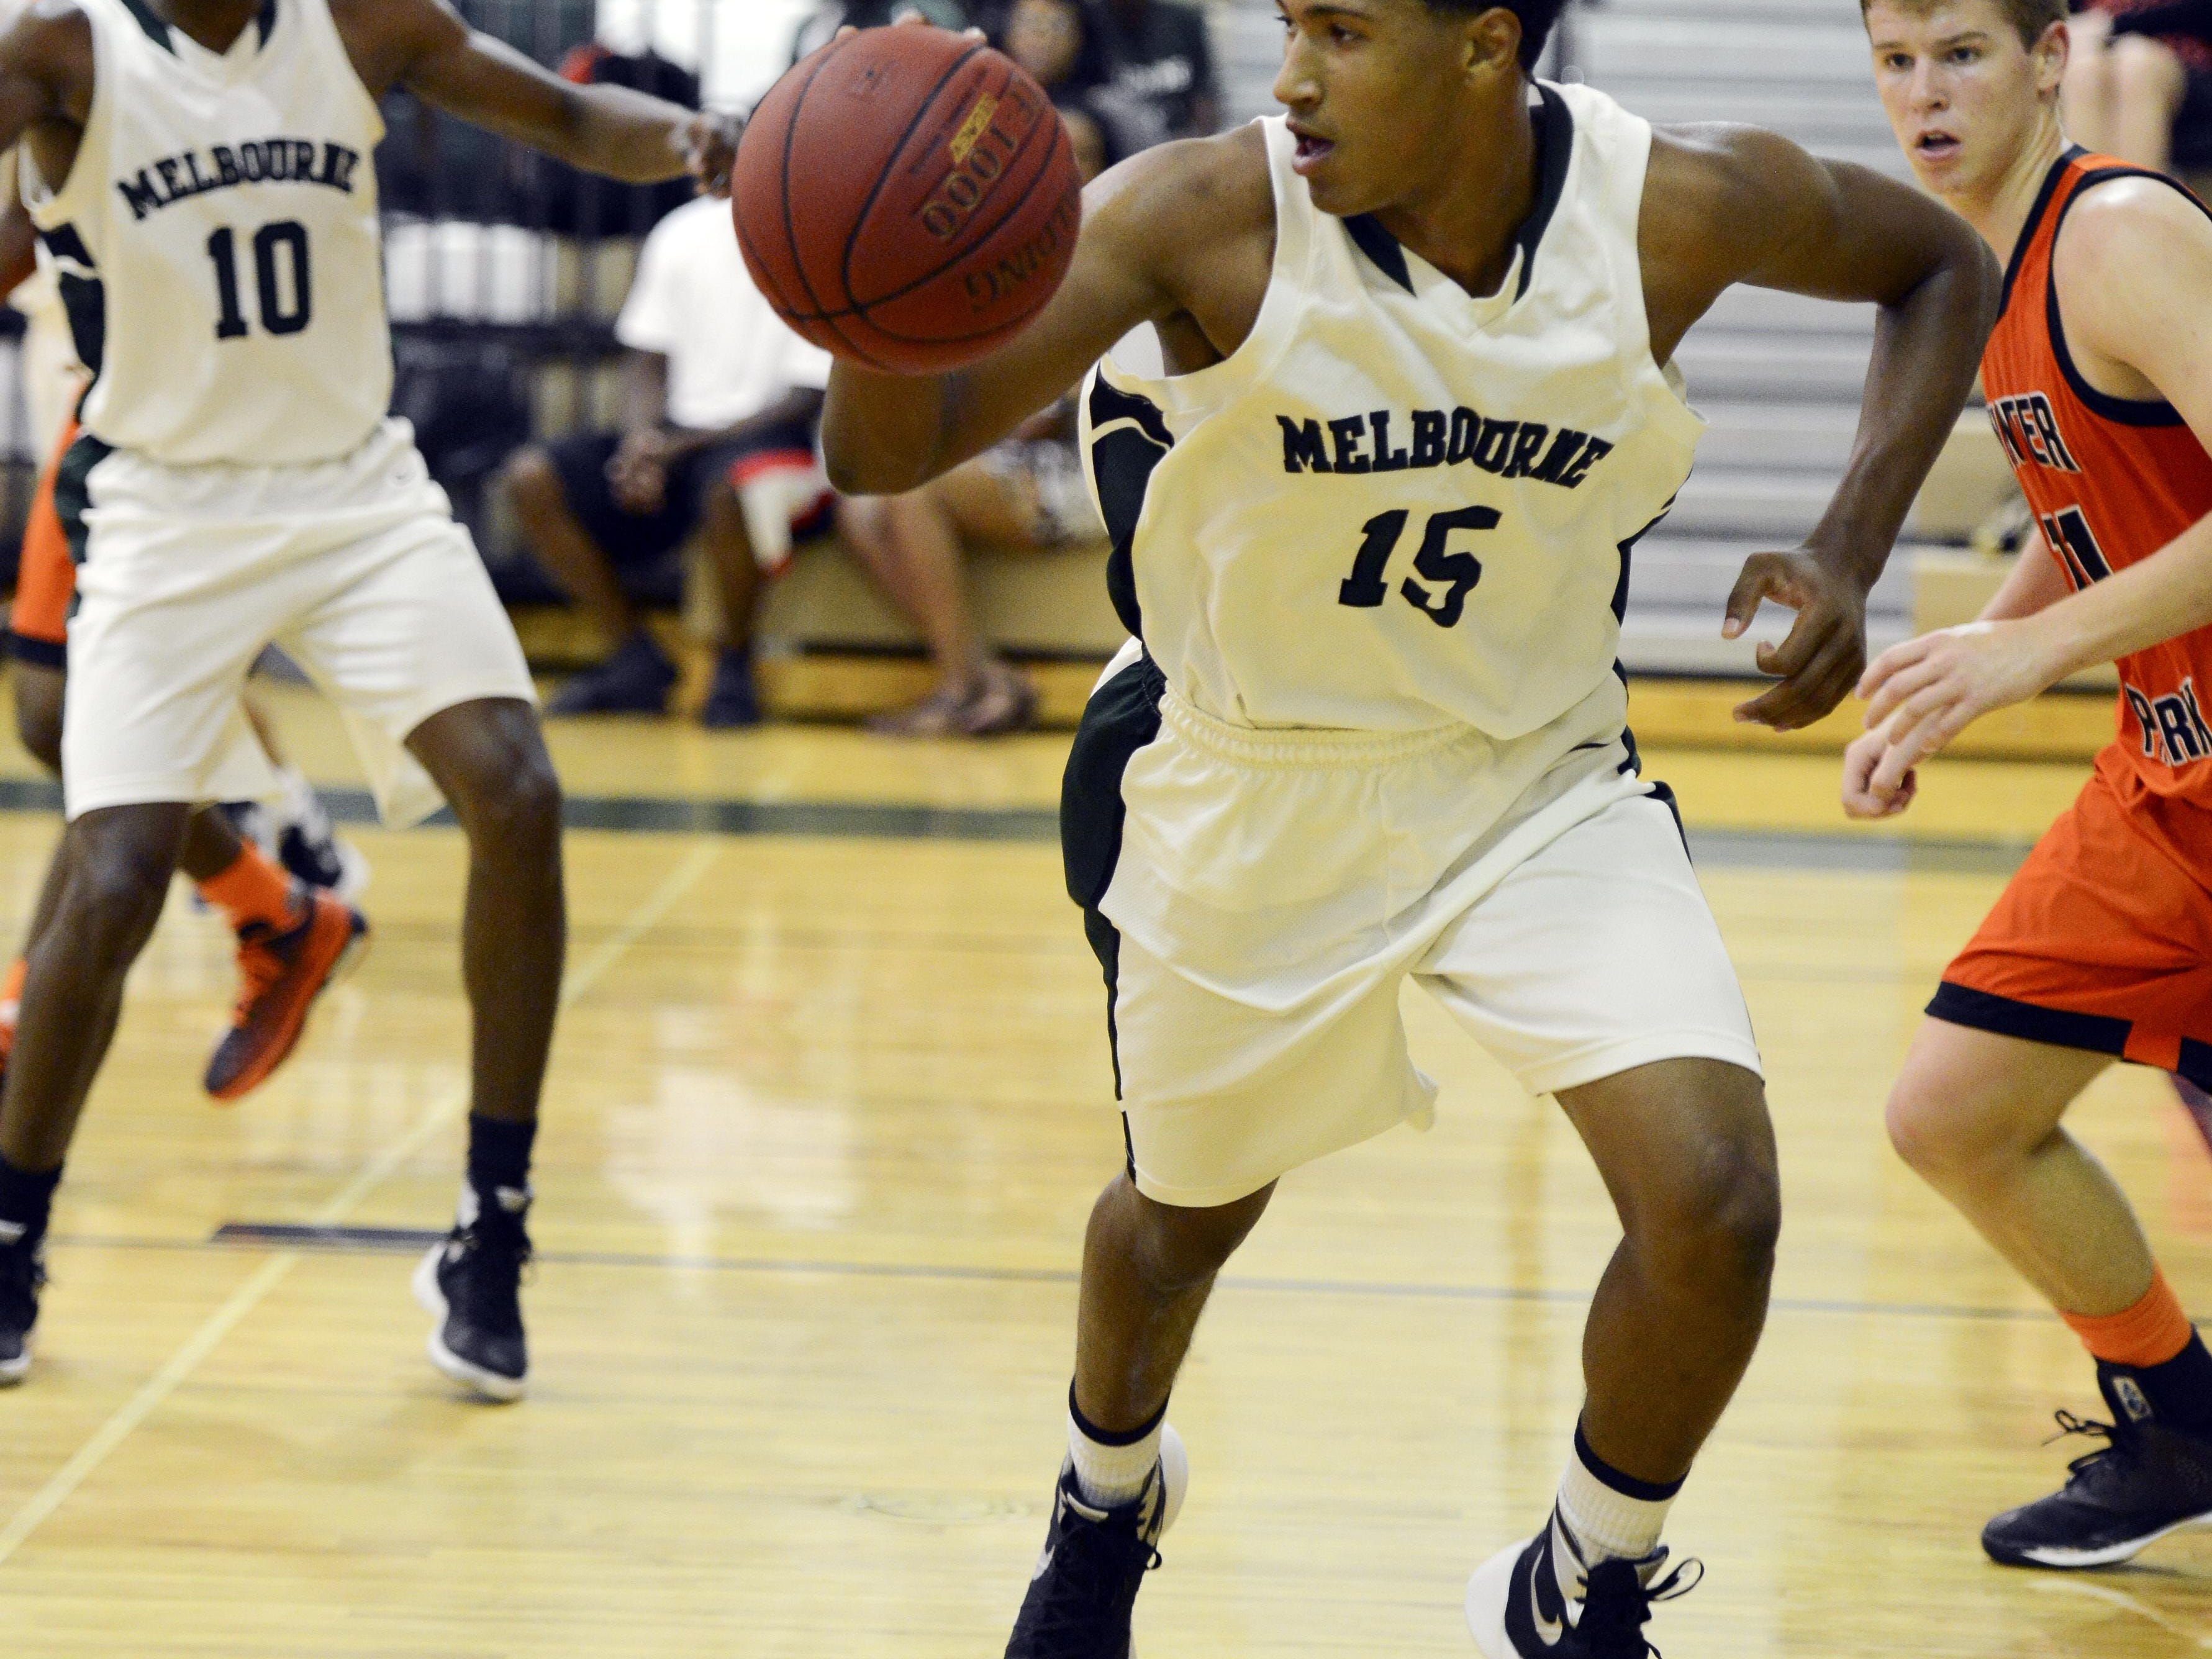 Melbourne's Dezmond Morgan (15) heads downcourt on a fast break during Tuesday's game against Winter Park.